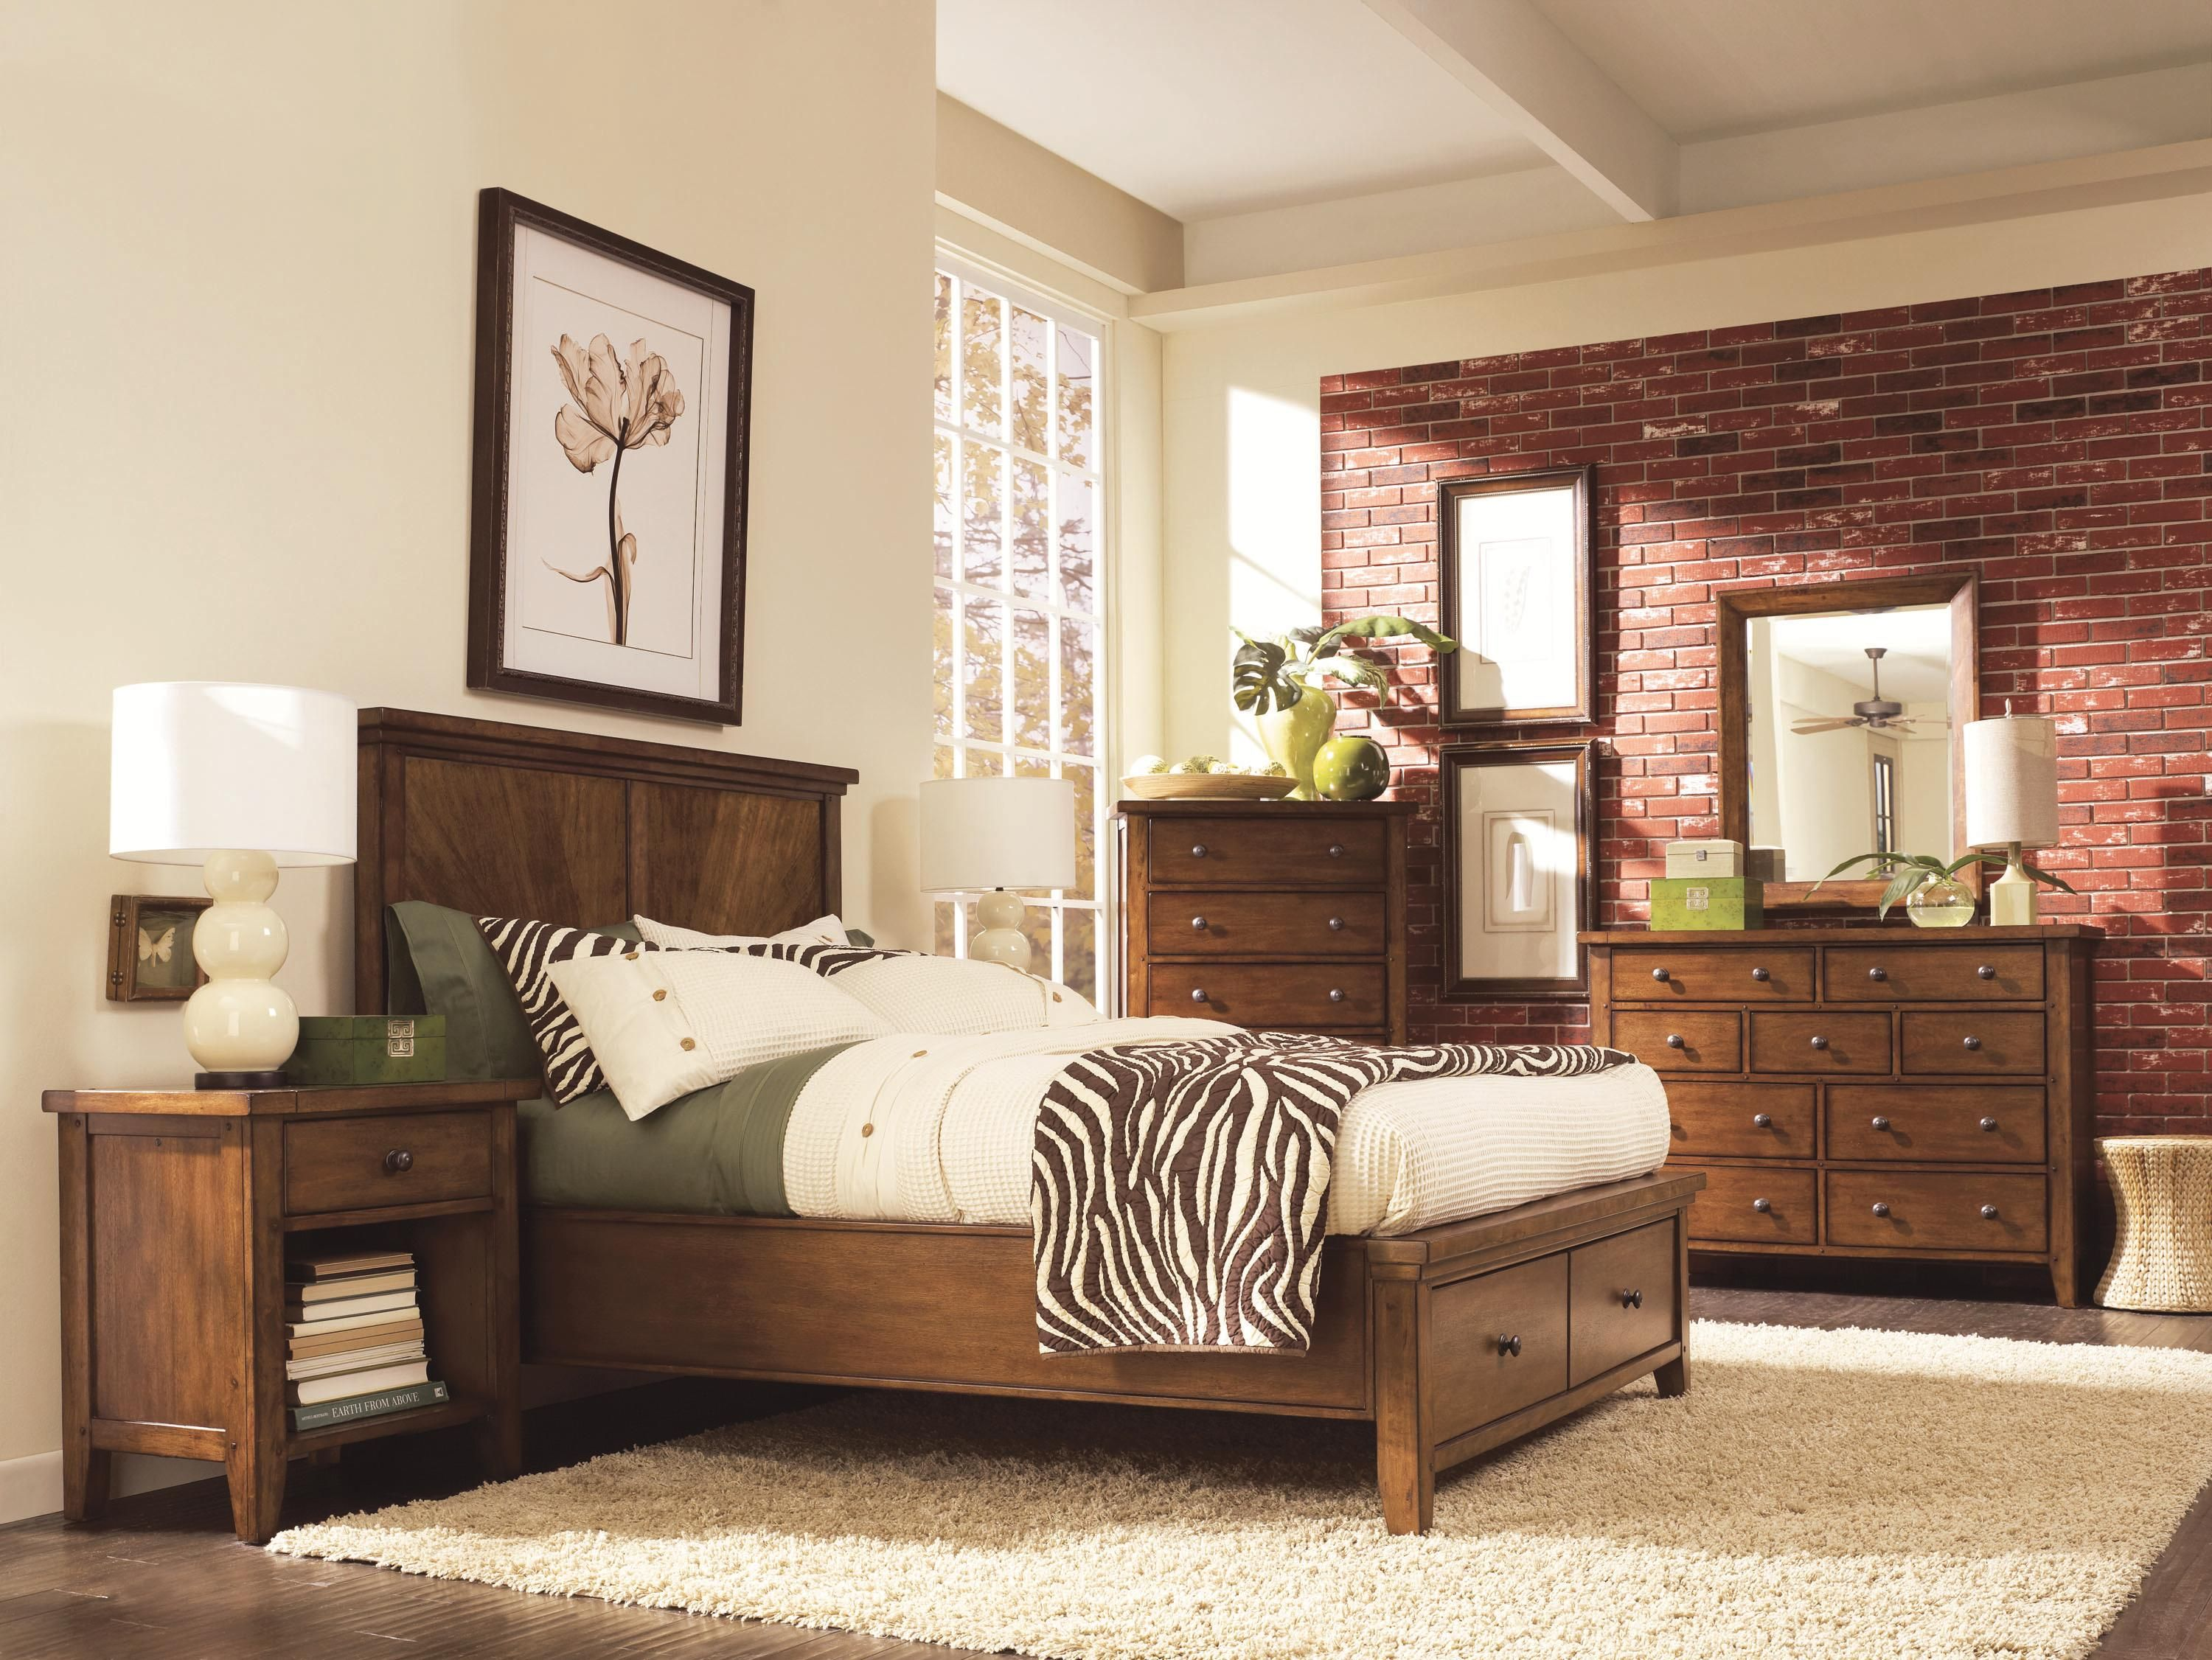 Aspen Home Furniture  Furniture, Home furniture, Furniture depot